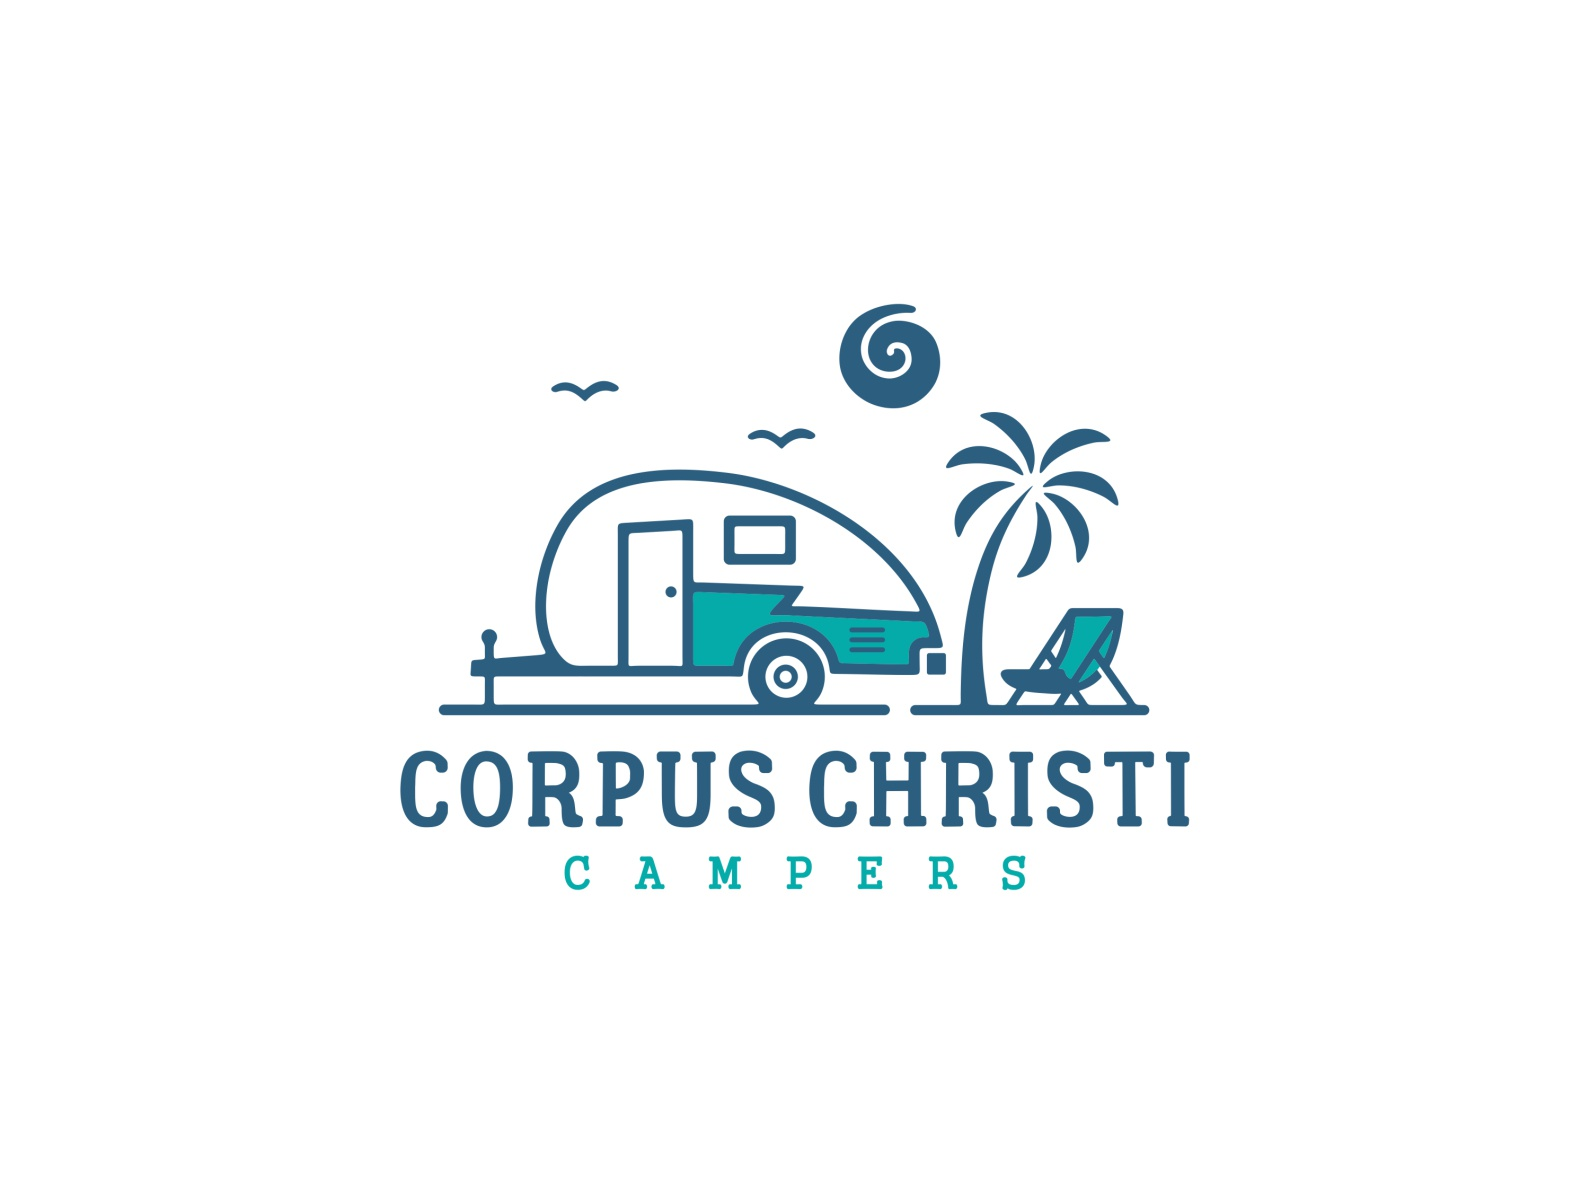 Corpus Christi Campers by humbl  on Dribbble